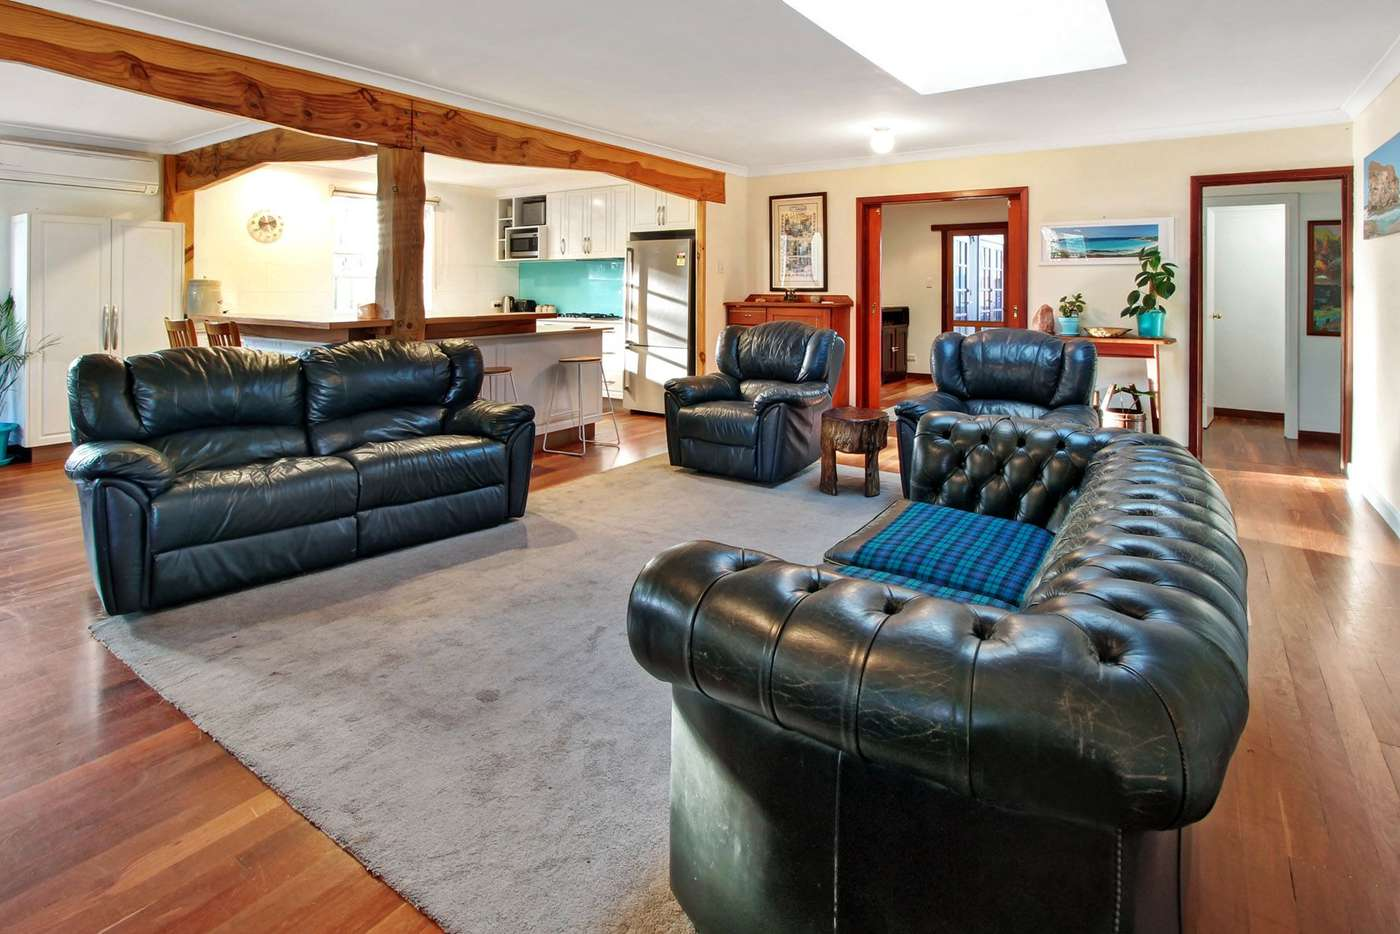 Fifth view of Homely house listing, 11 Paterson Street, Denmark WA 6333